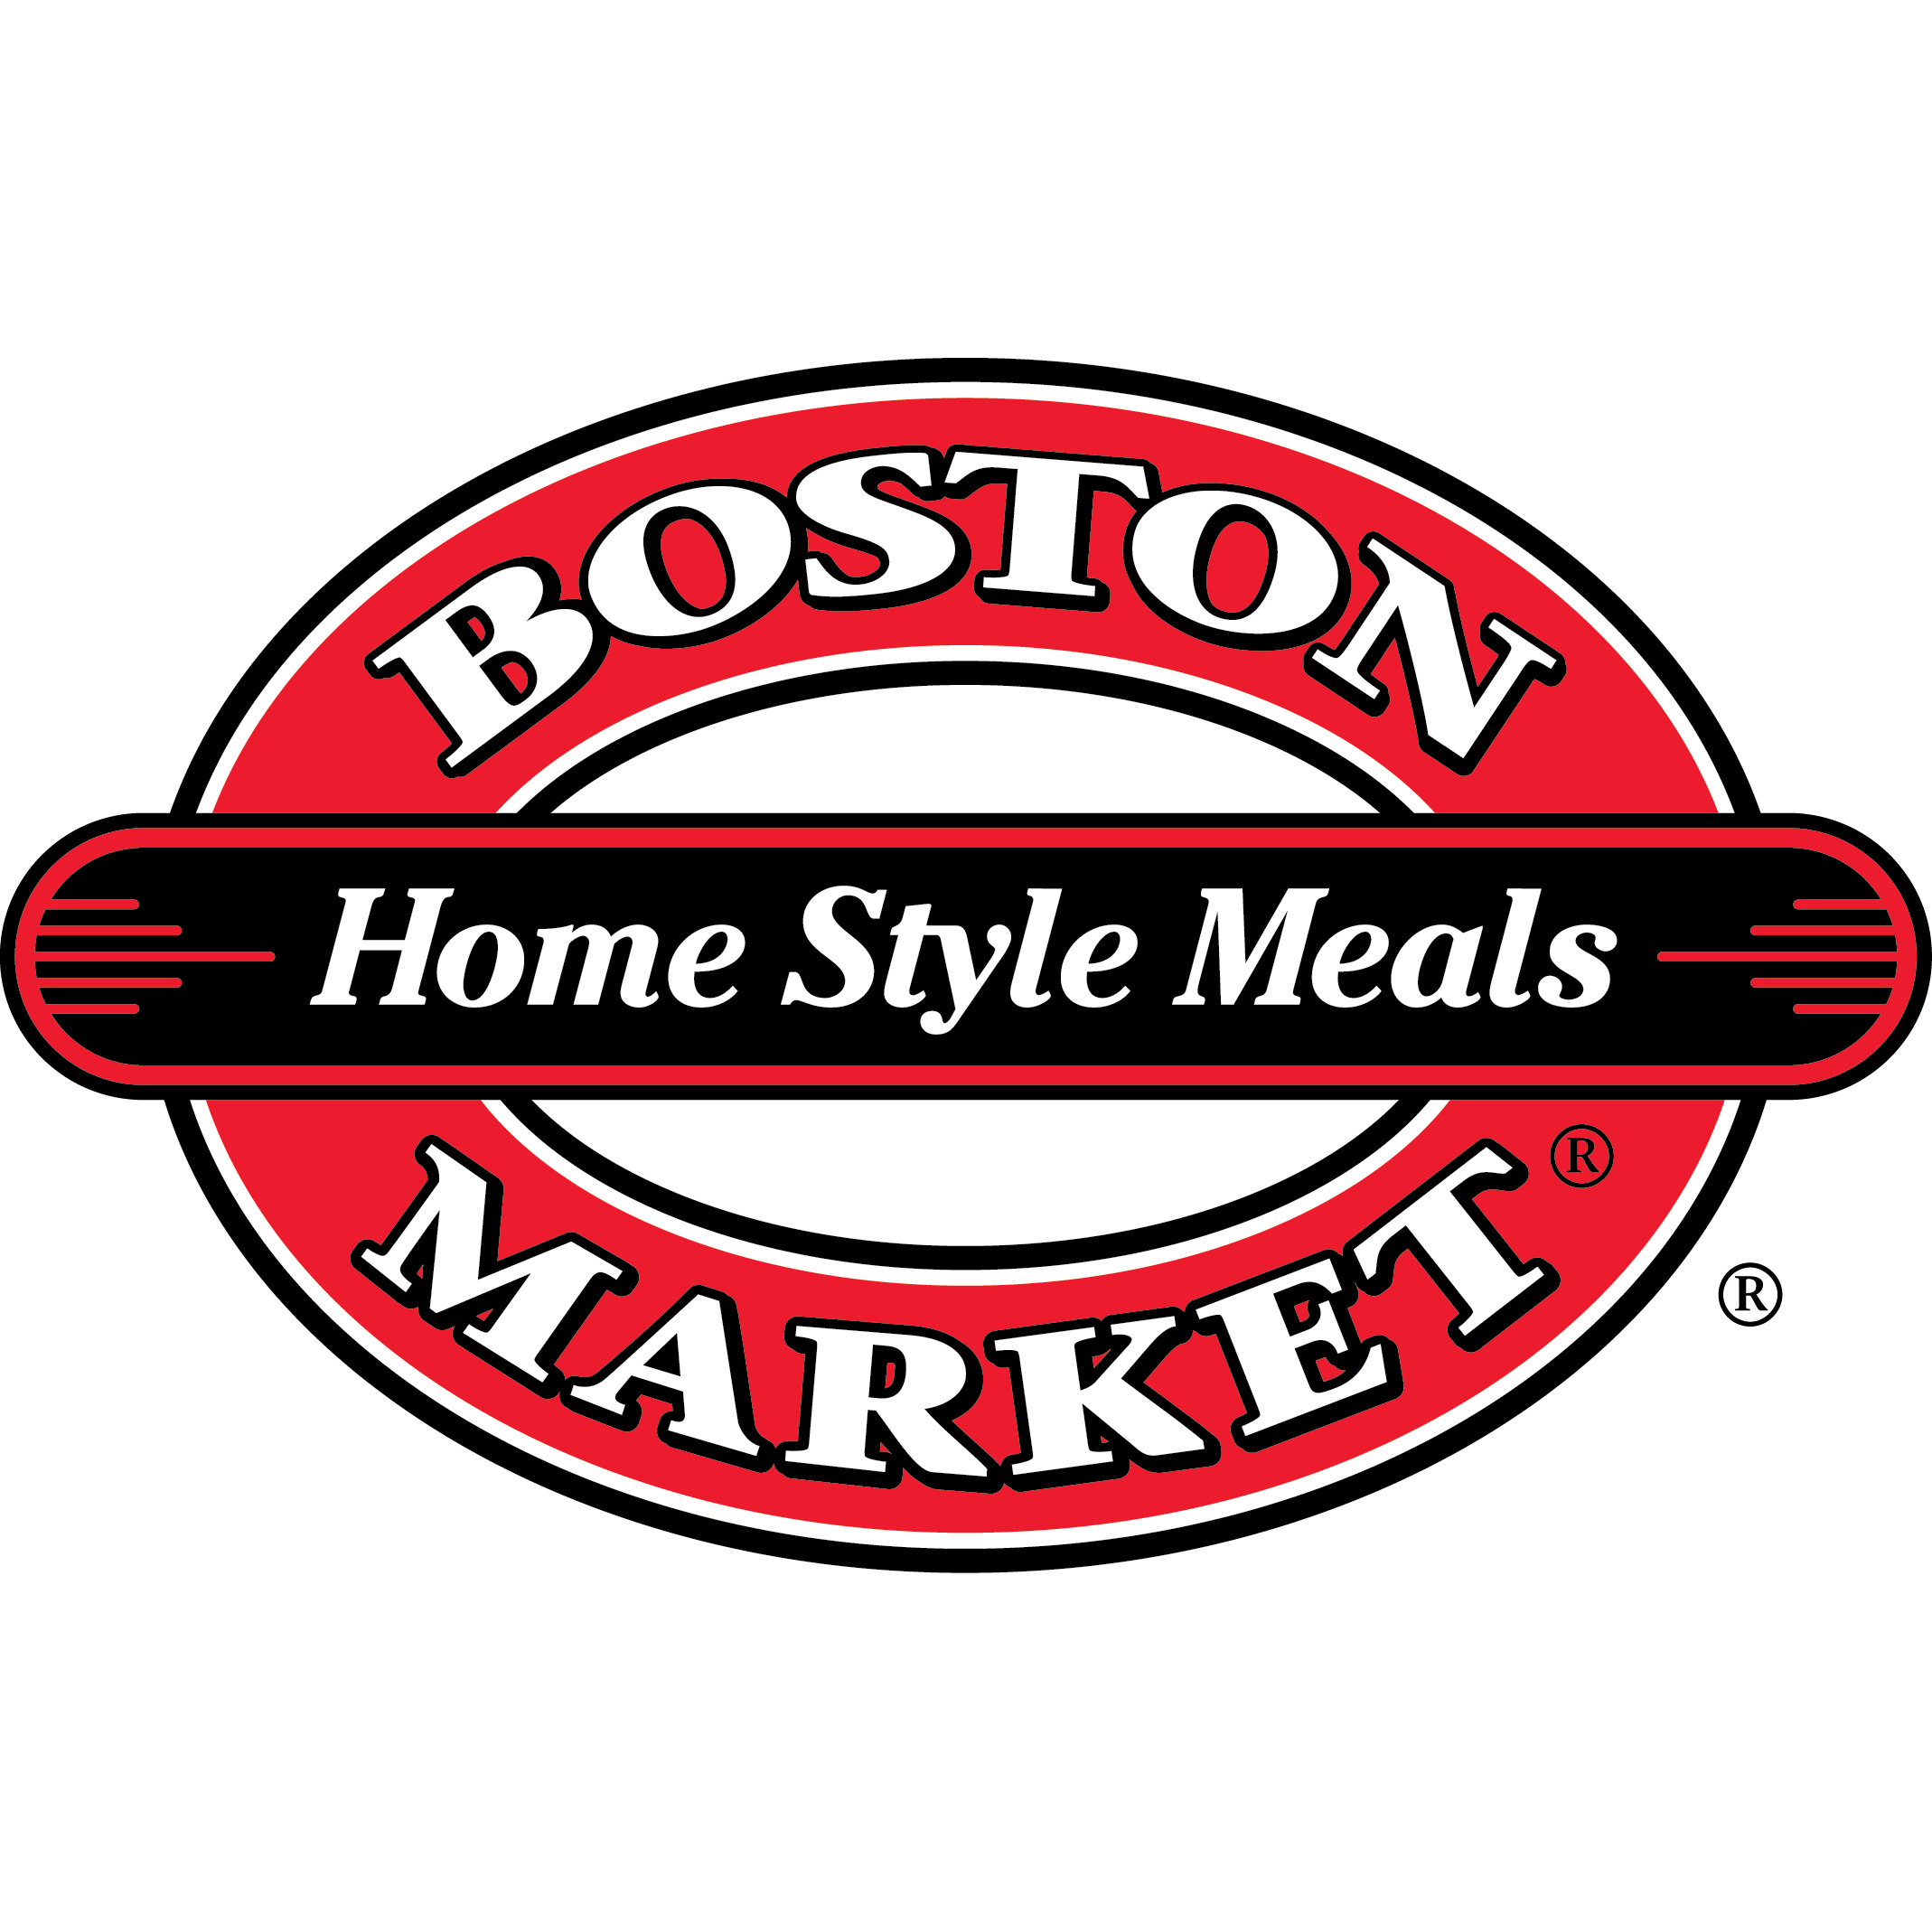 Boston Market image 4